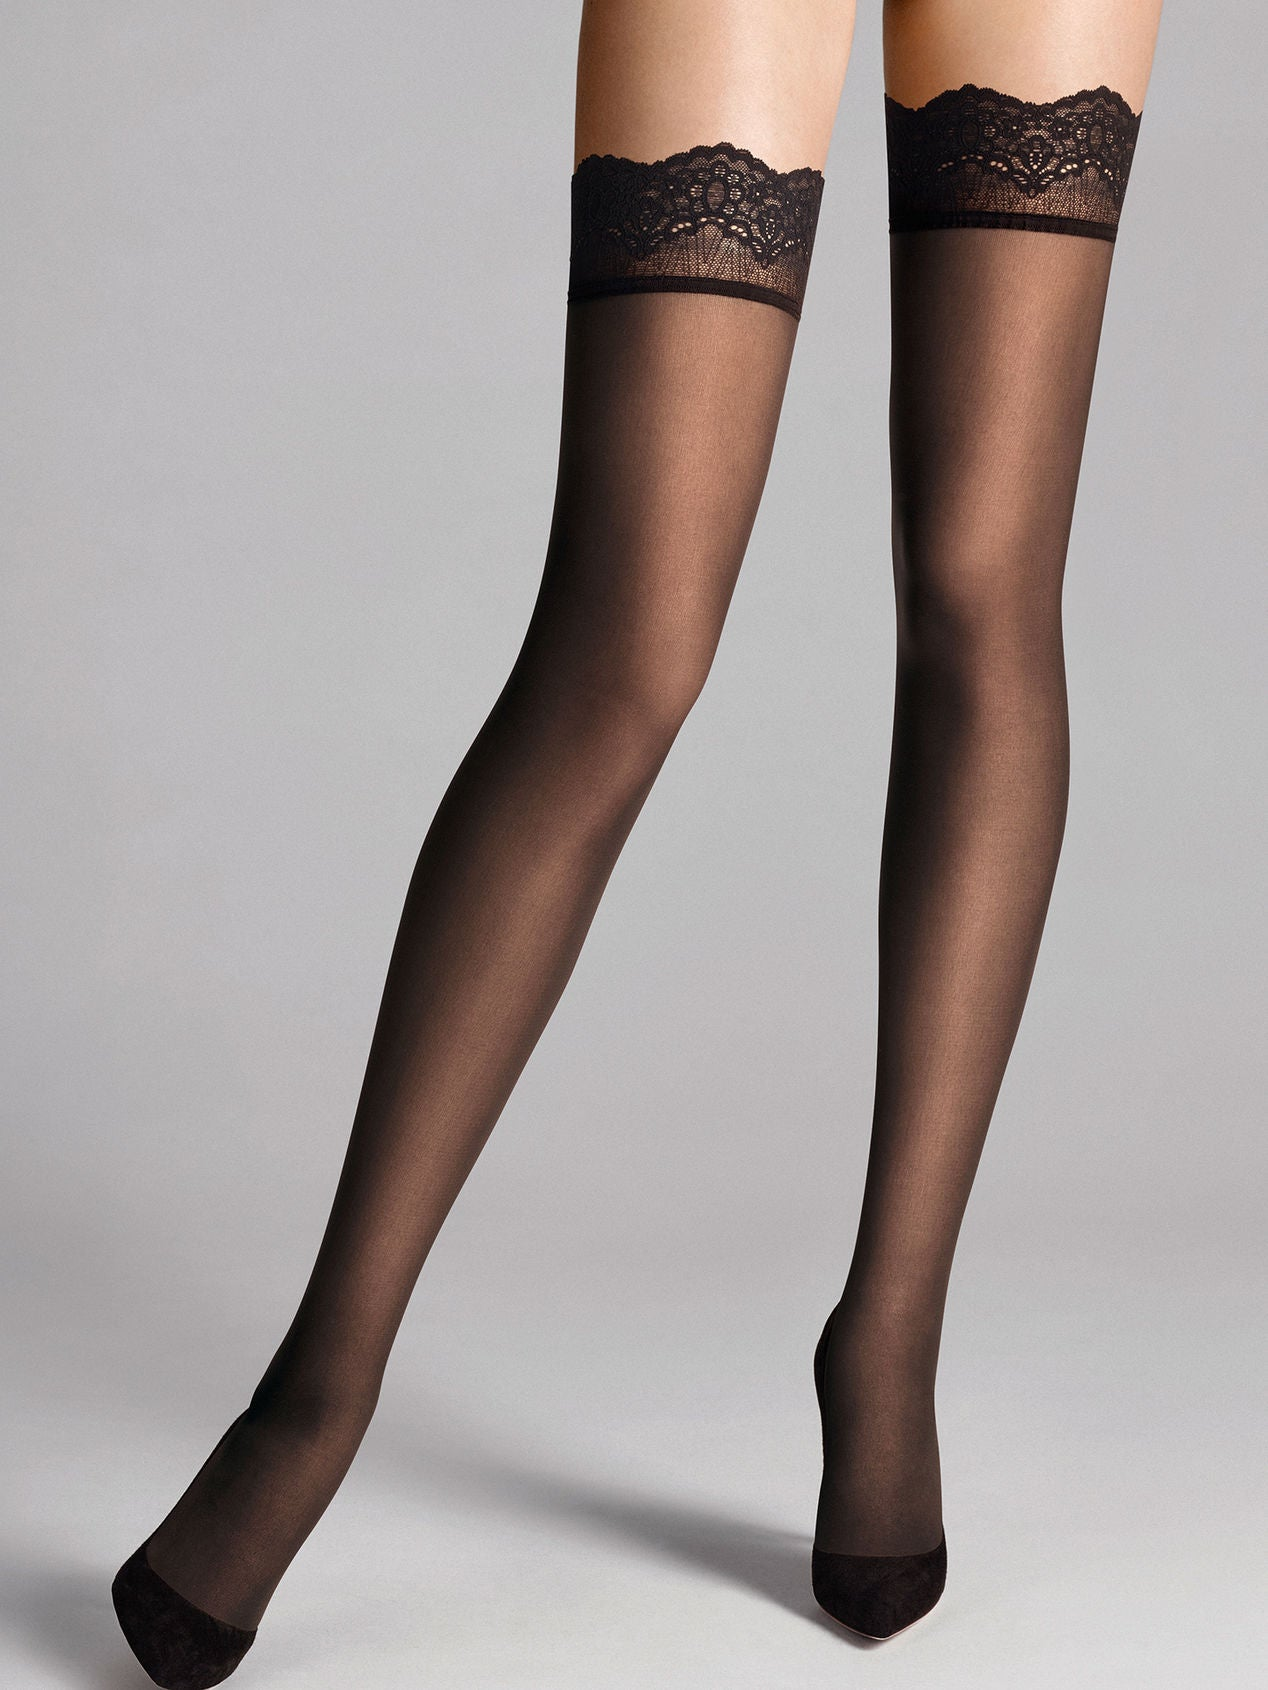 Wolford Velvet Light 40 Stay Ups